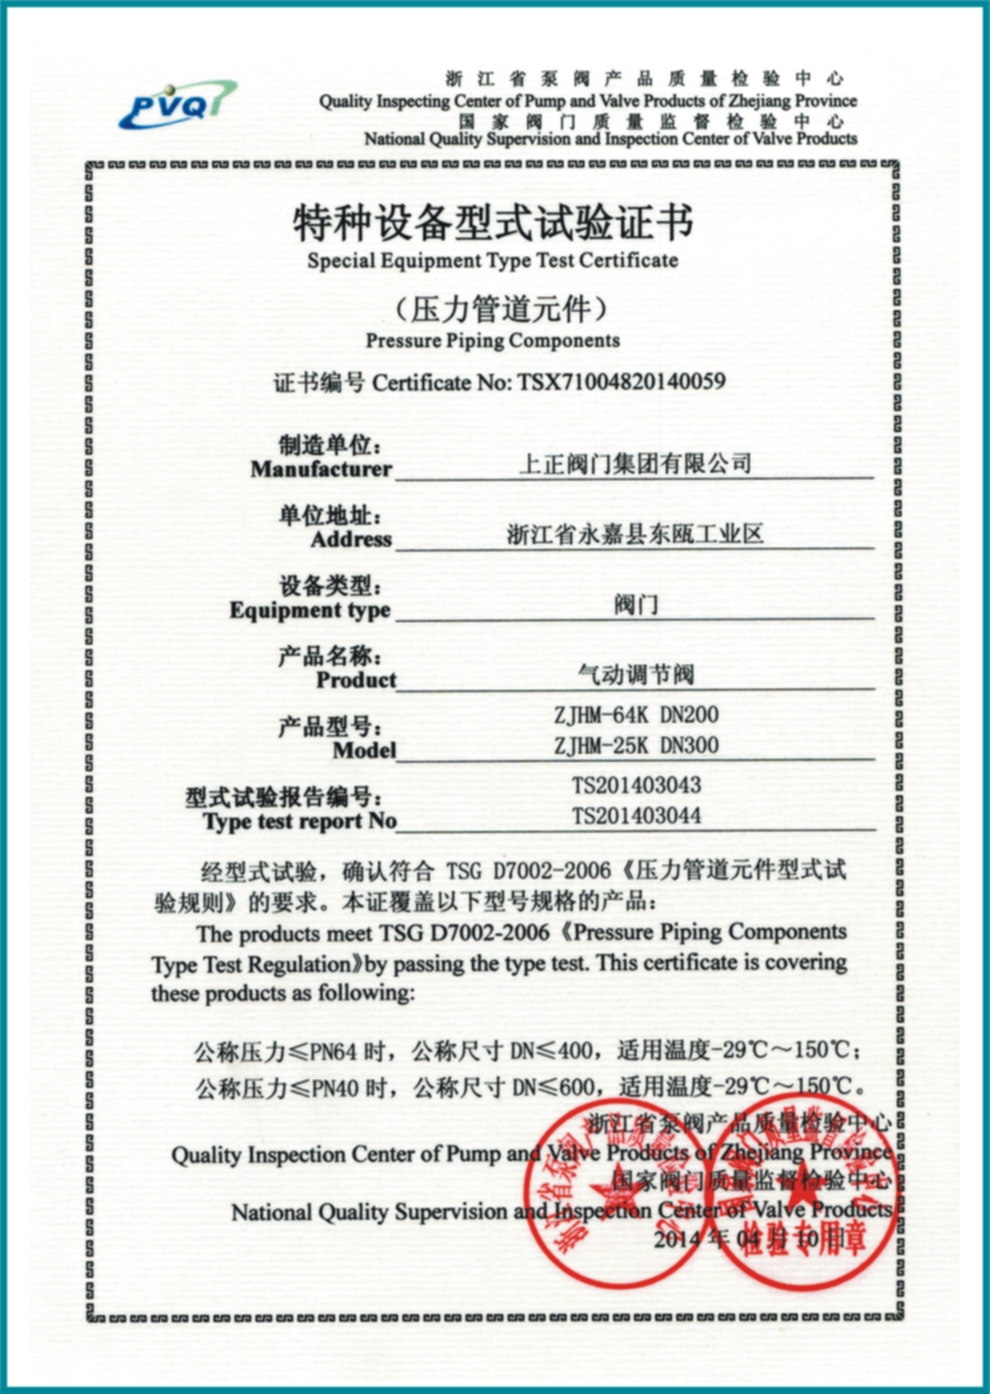 Special Equipment Type Test Certificate- Pneumatic control valve